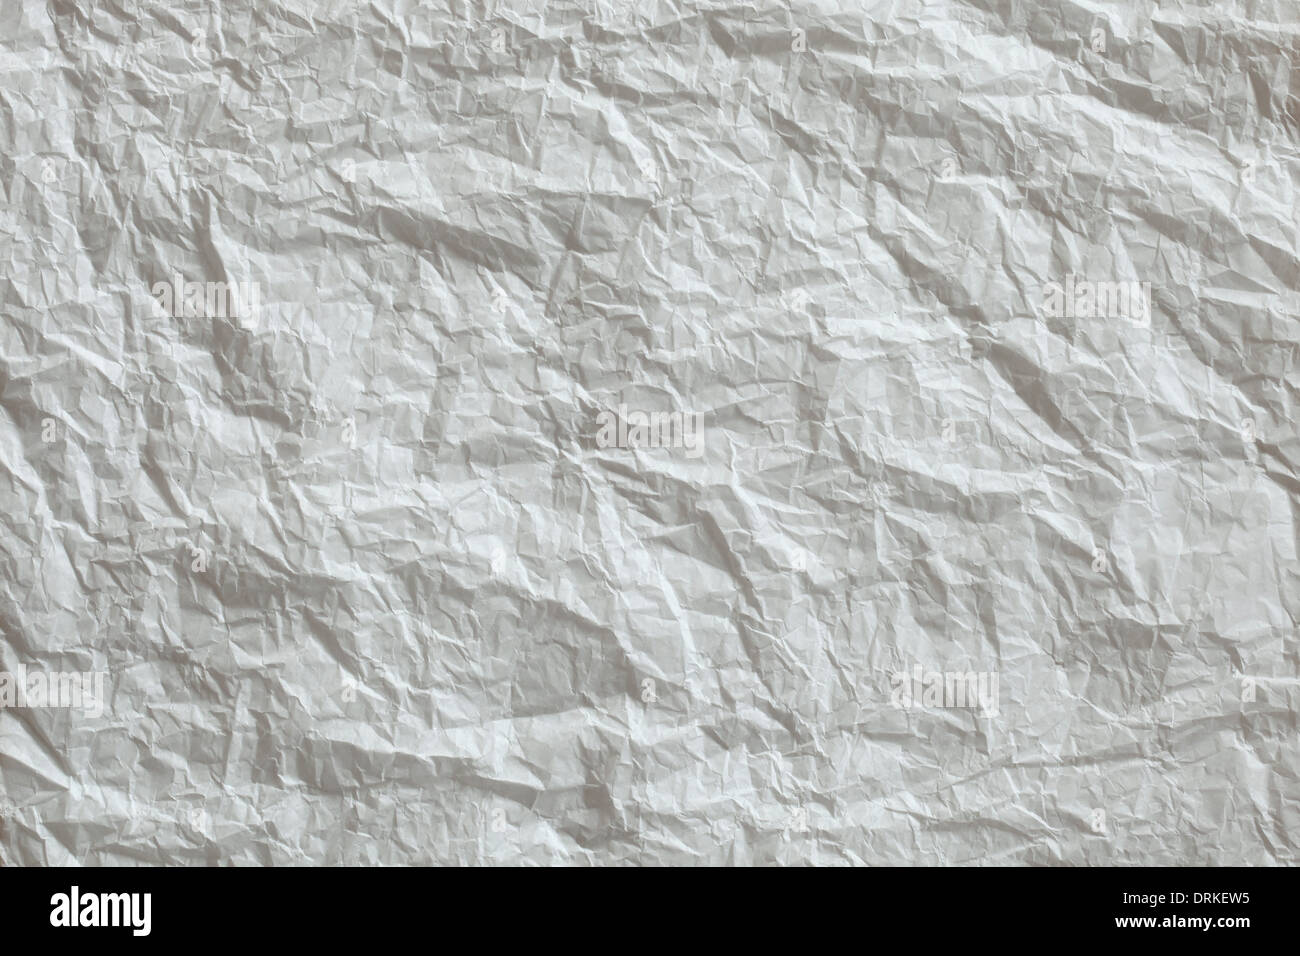 White crumpled paper texture - Stock Image